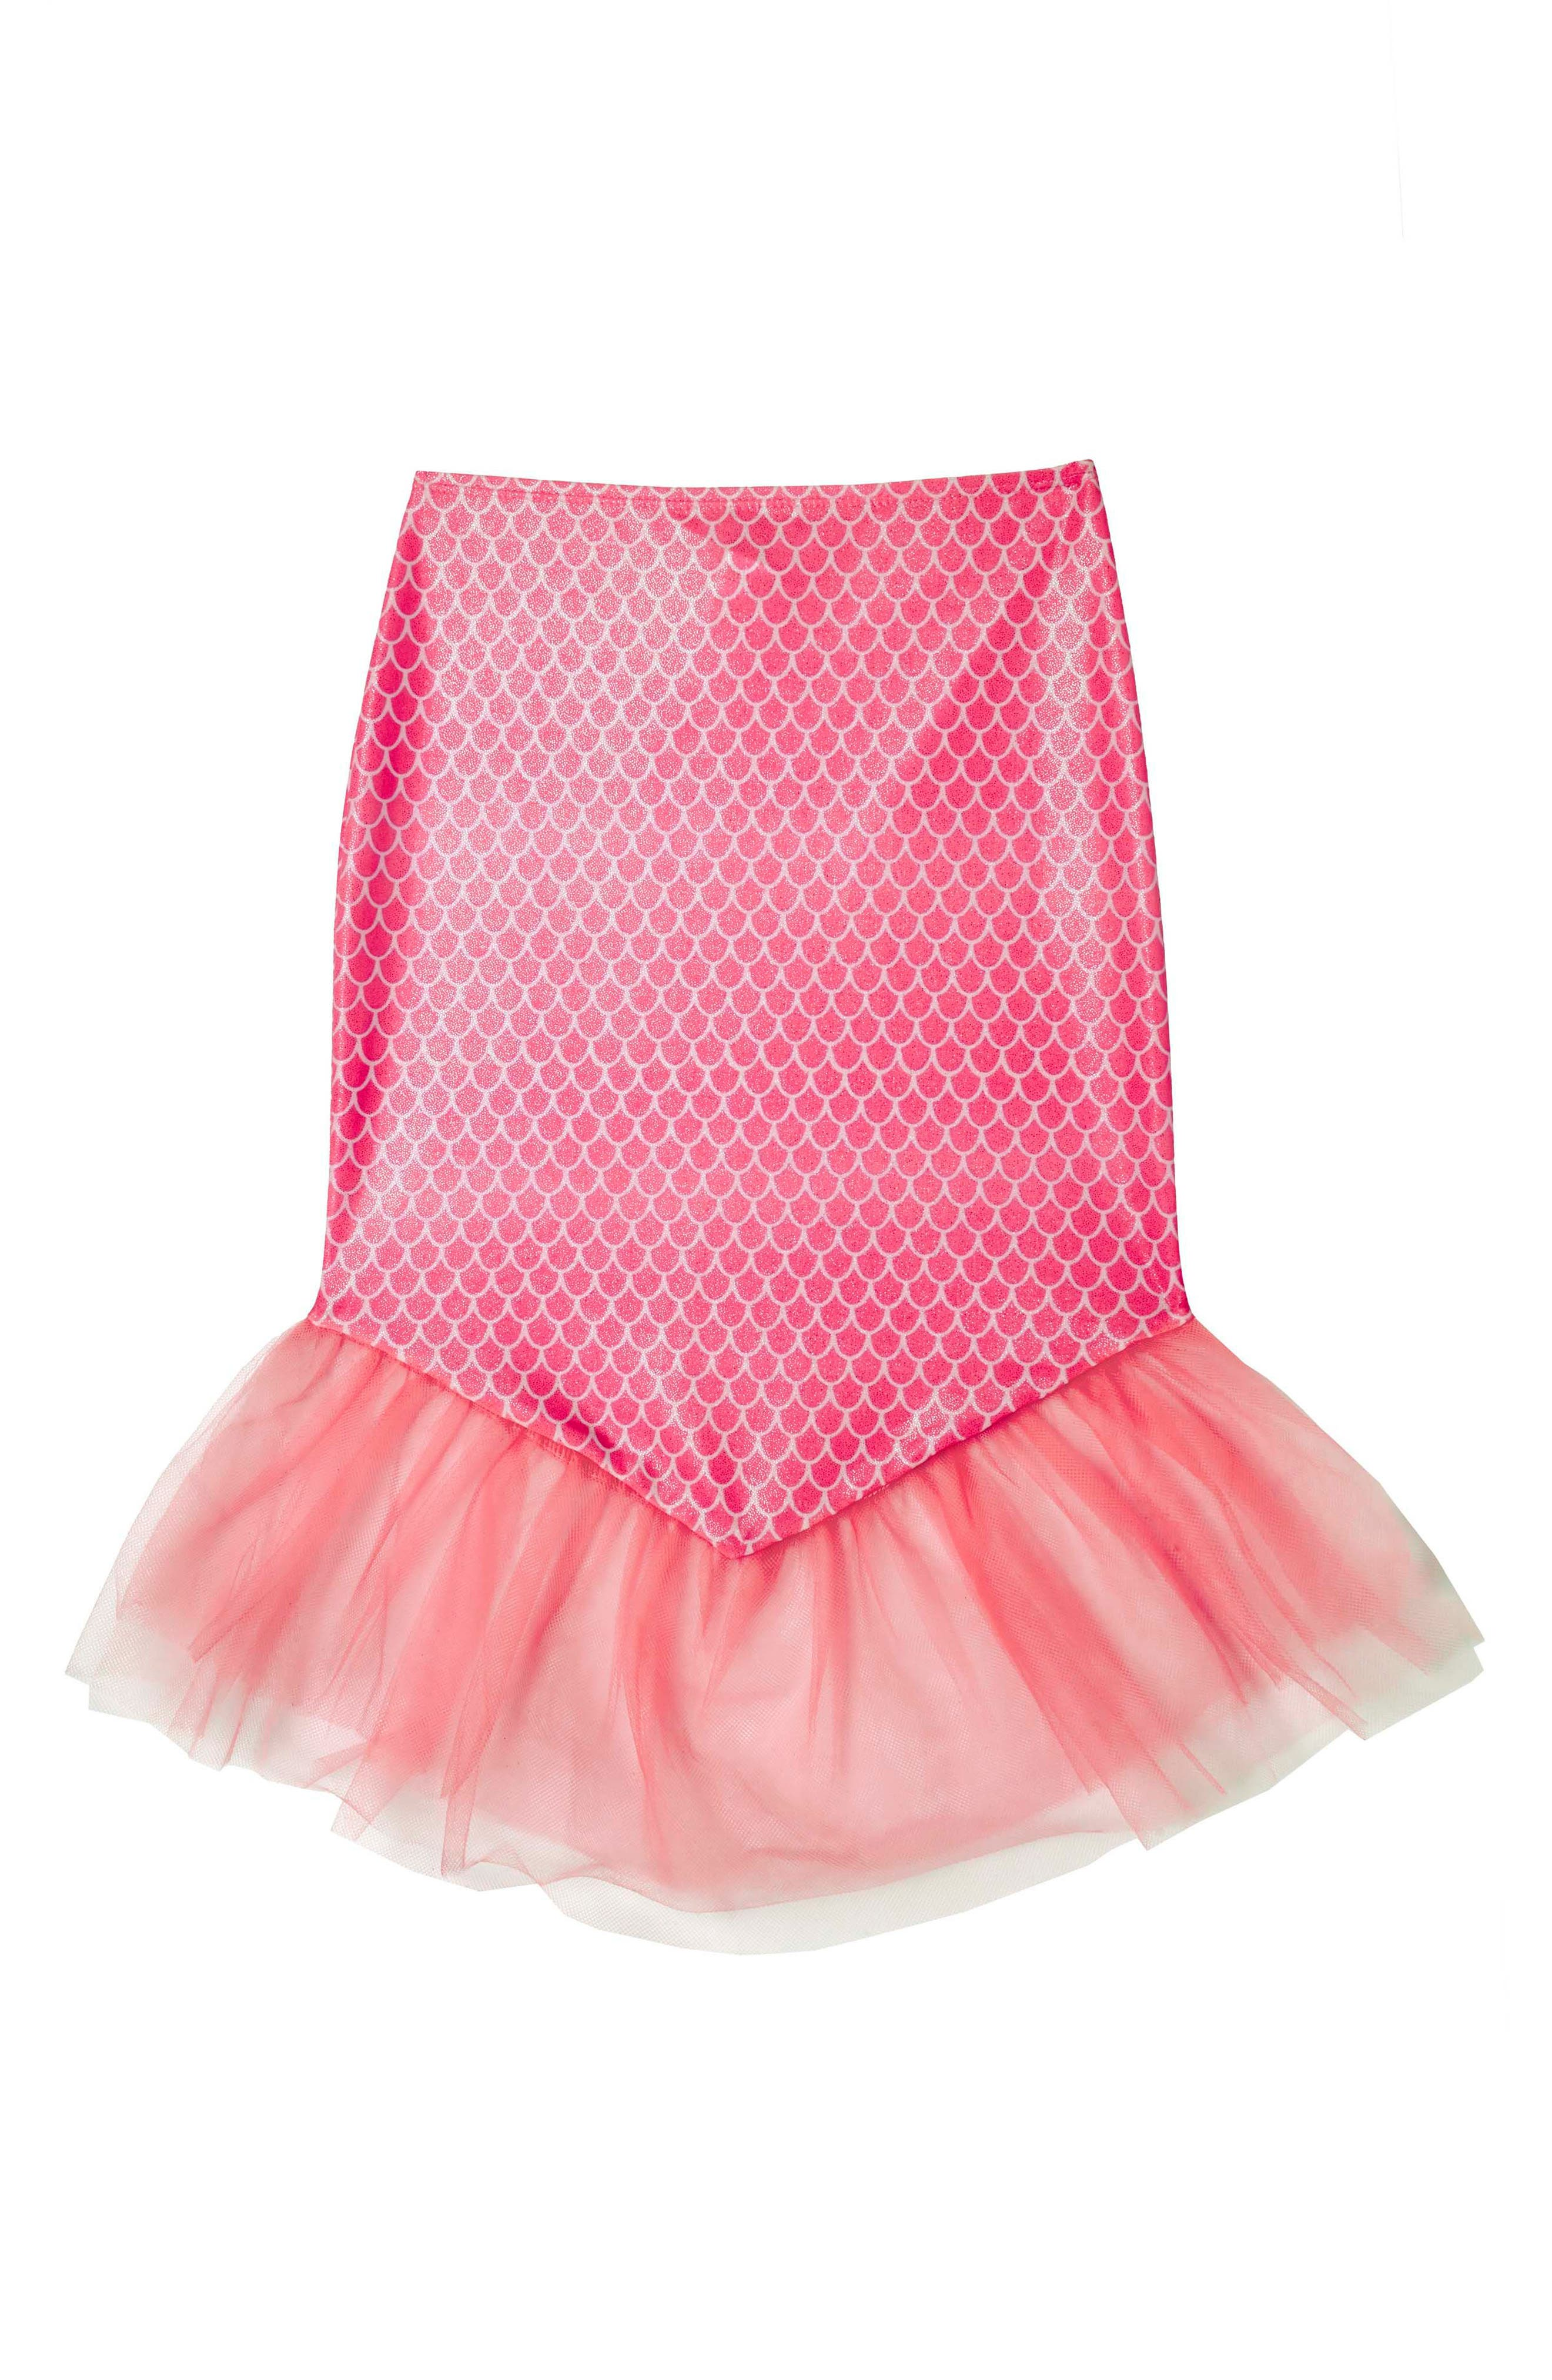 Main Image - Hula Star Mermaid Princess Cover-Up Skirt (Toddler Girls & Little Girls)